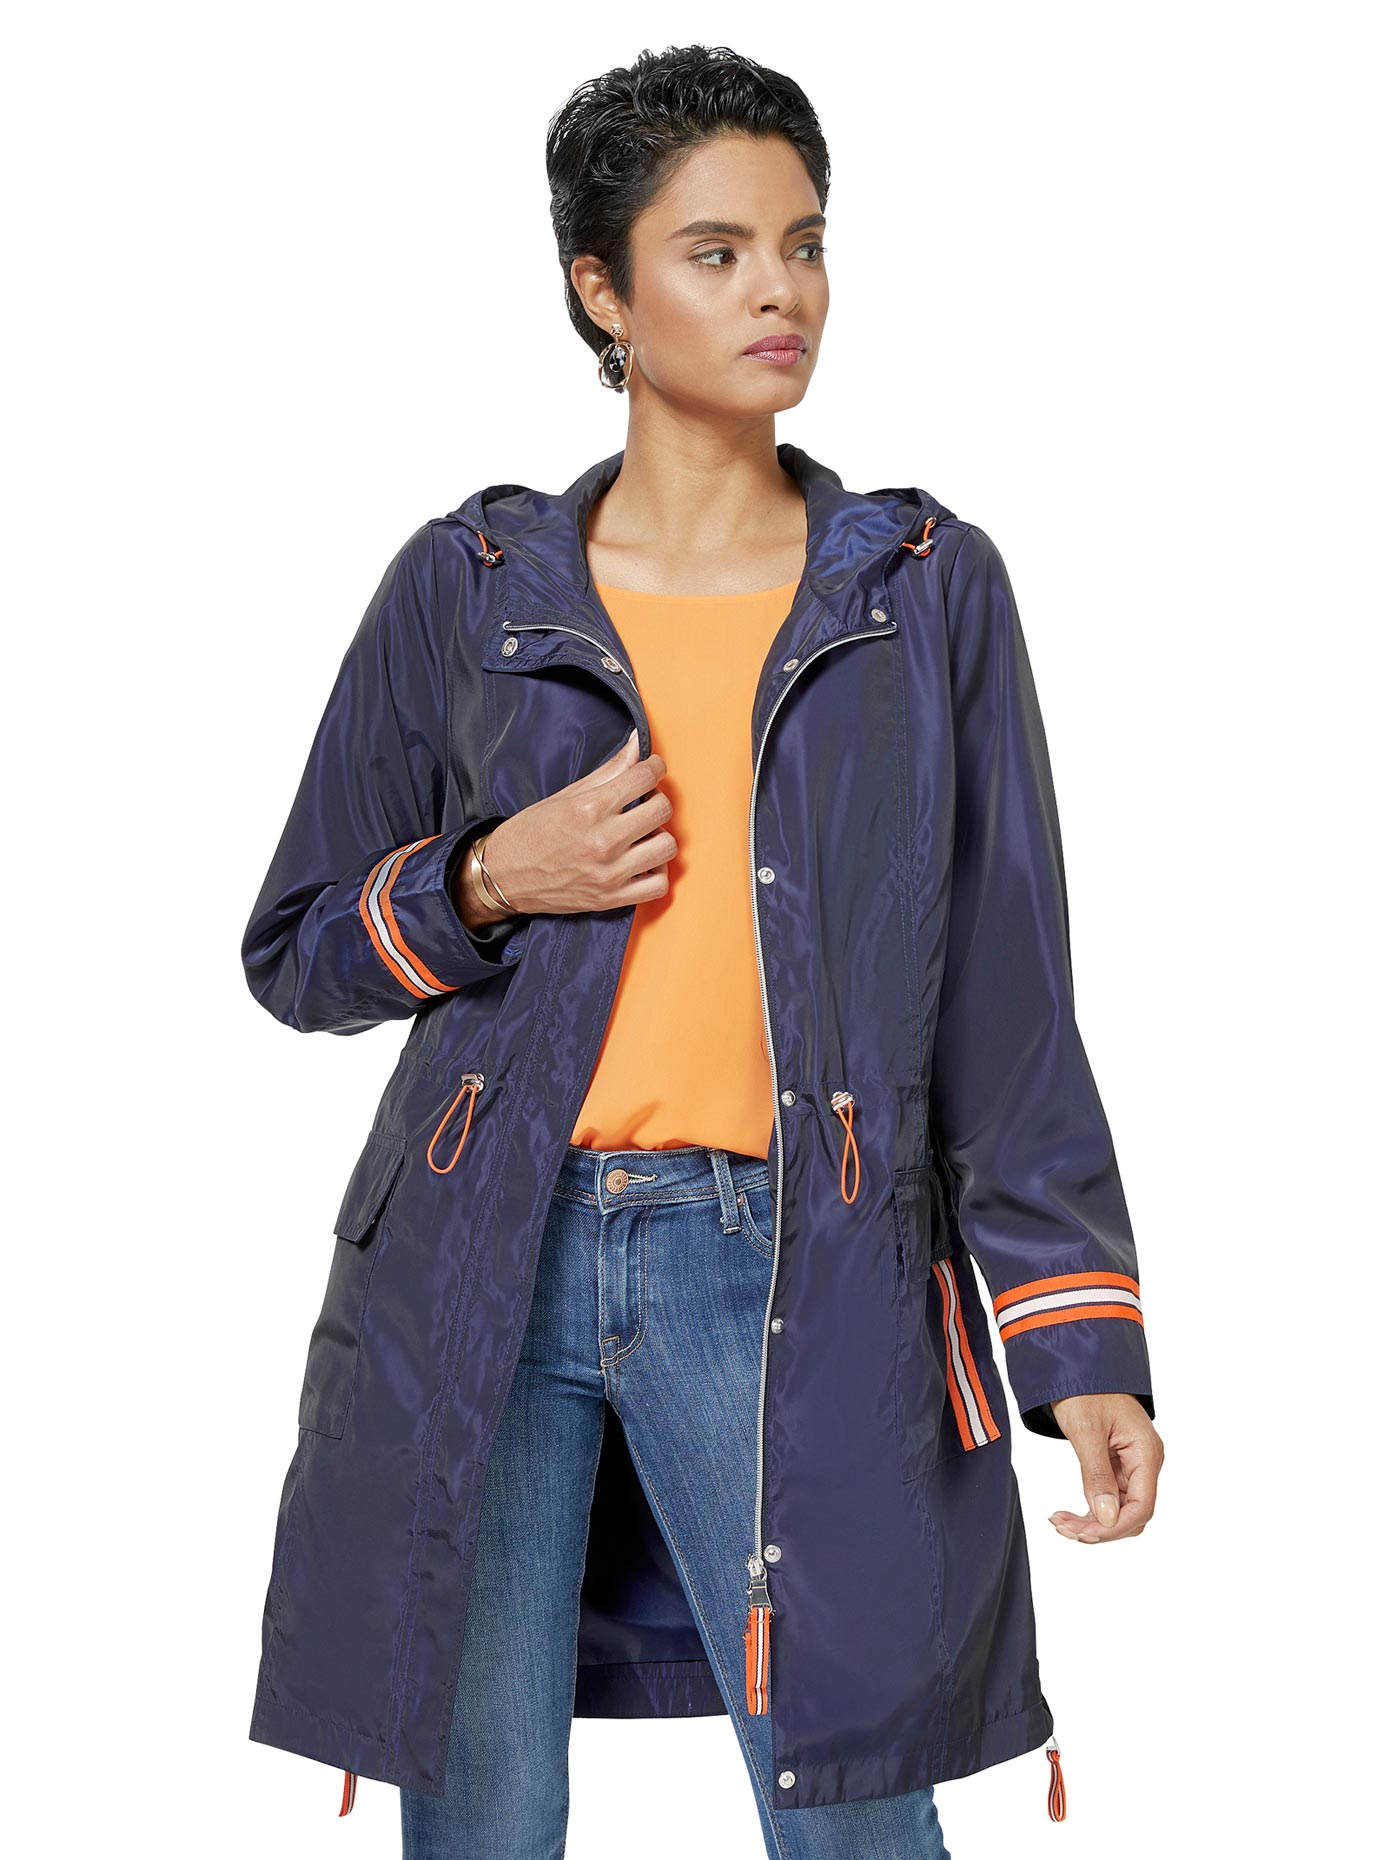 creation l - WITT WEIDEN Damen Parka blau